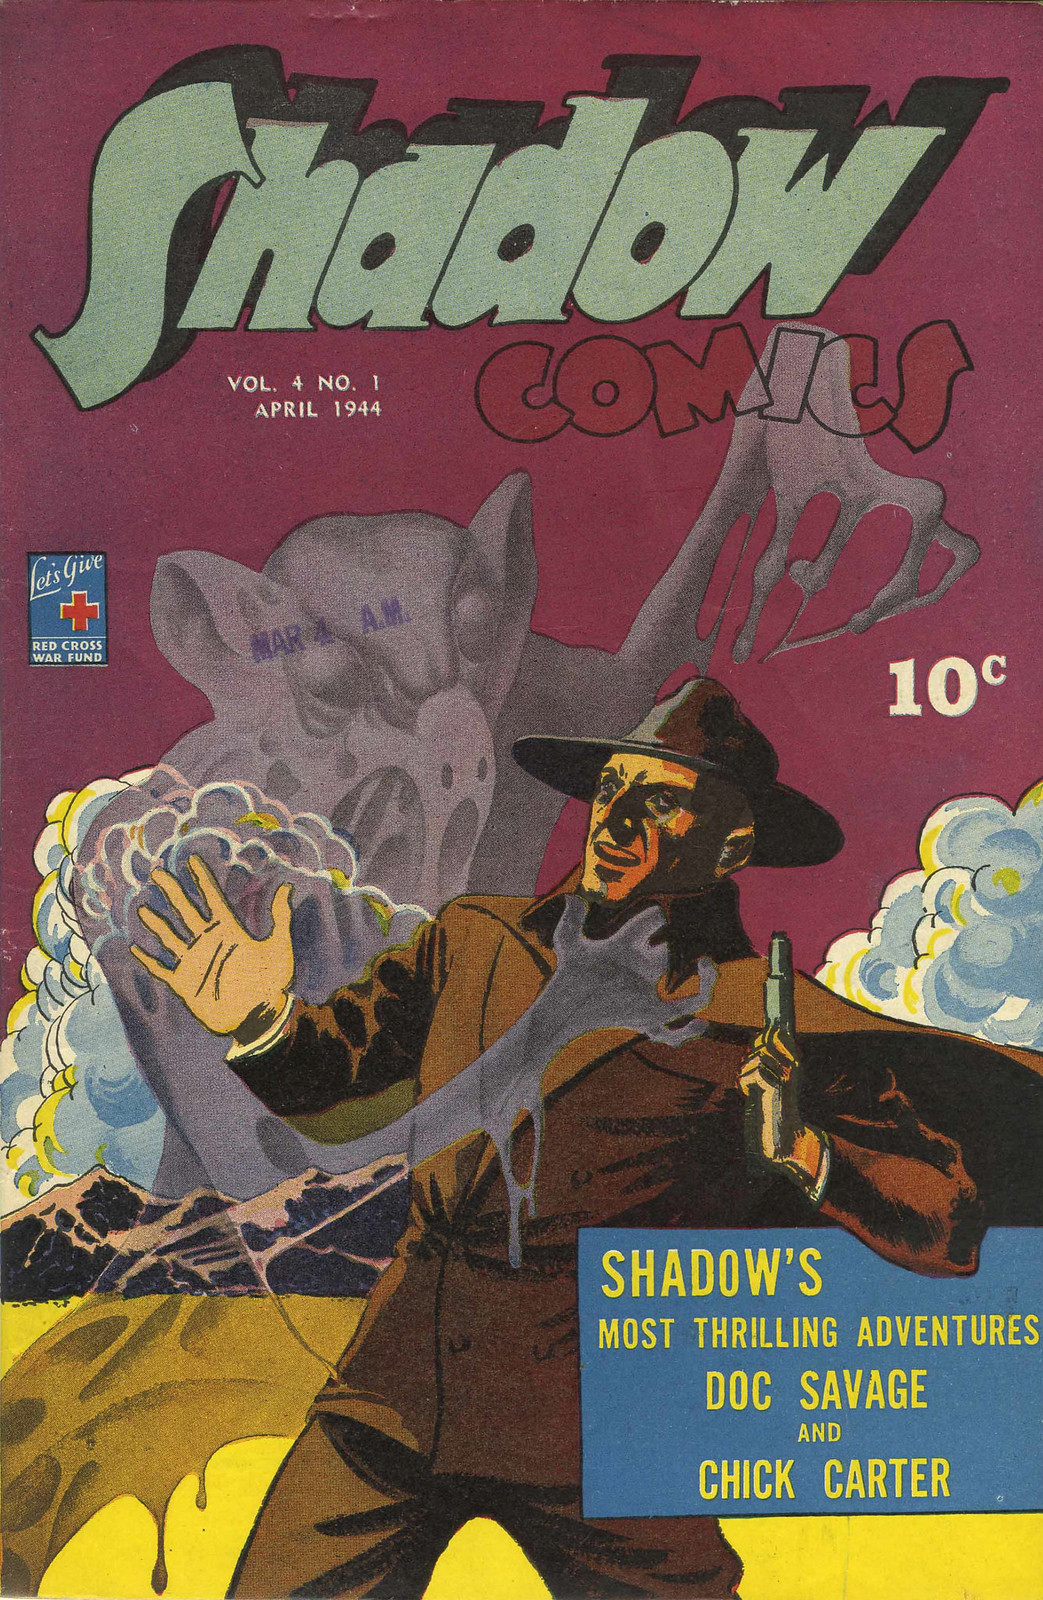 Shadow Comics V4#1 (Street & Smith, 1944) Charles Coll Cover